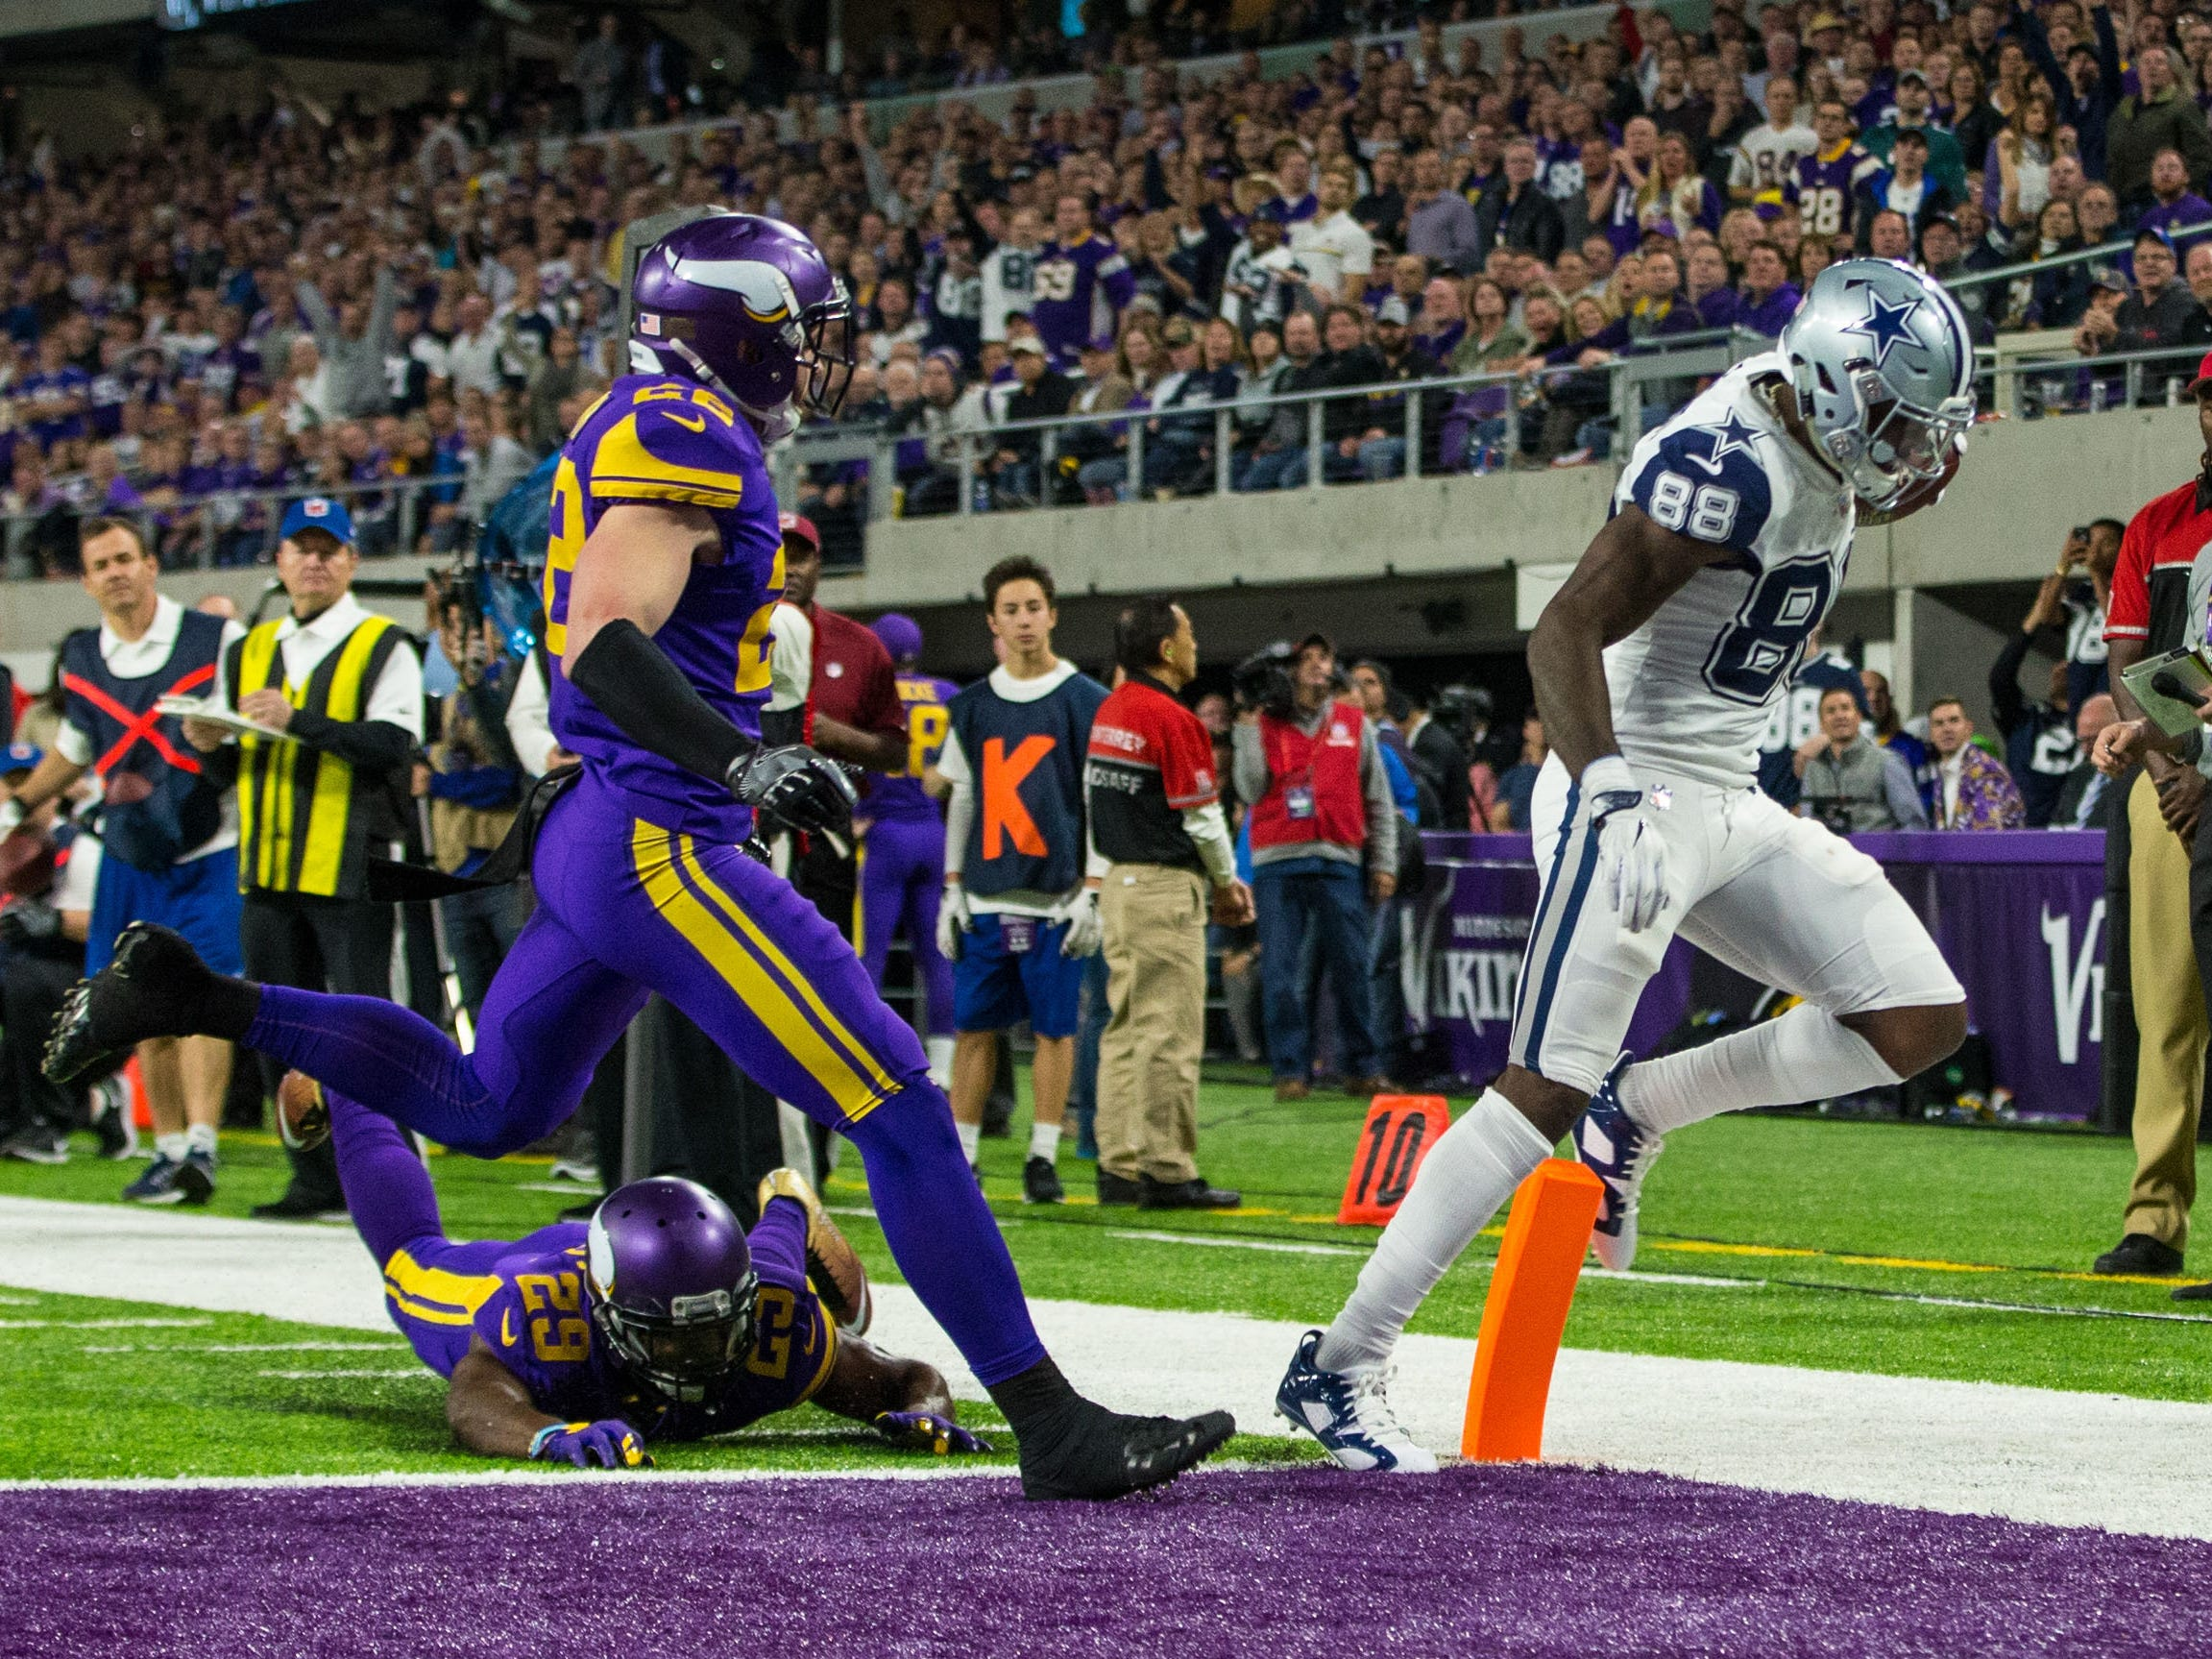 Dez Bryant scores a touchdown against the Minnesota Vikings at U.S. Bank Stadium in 2016.